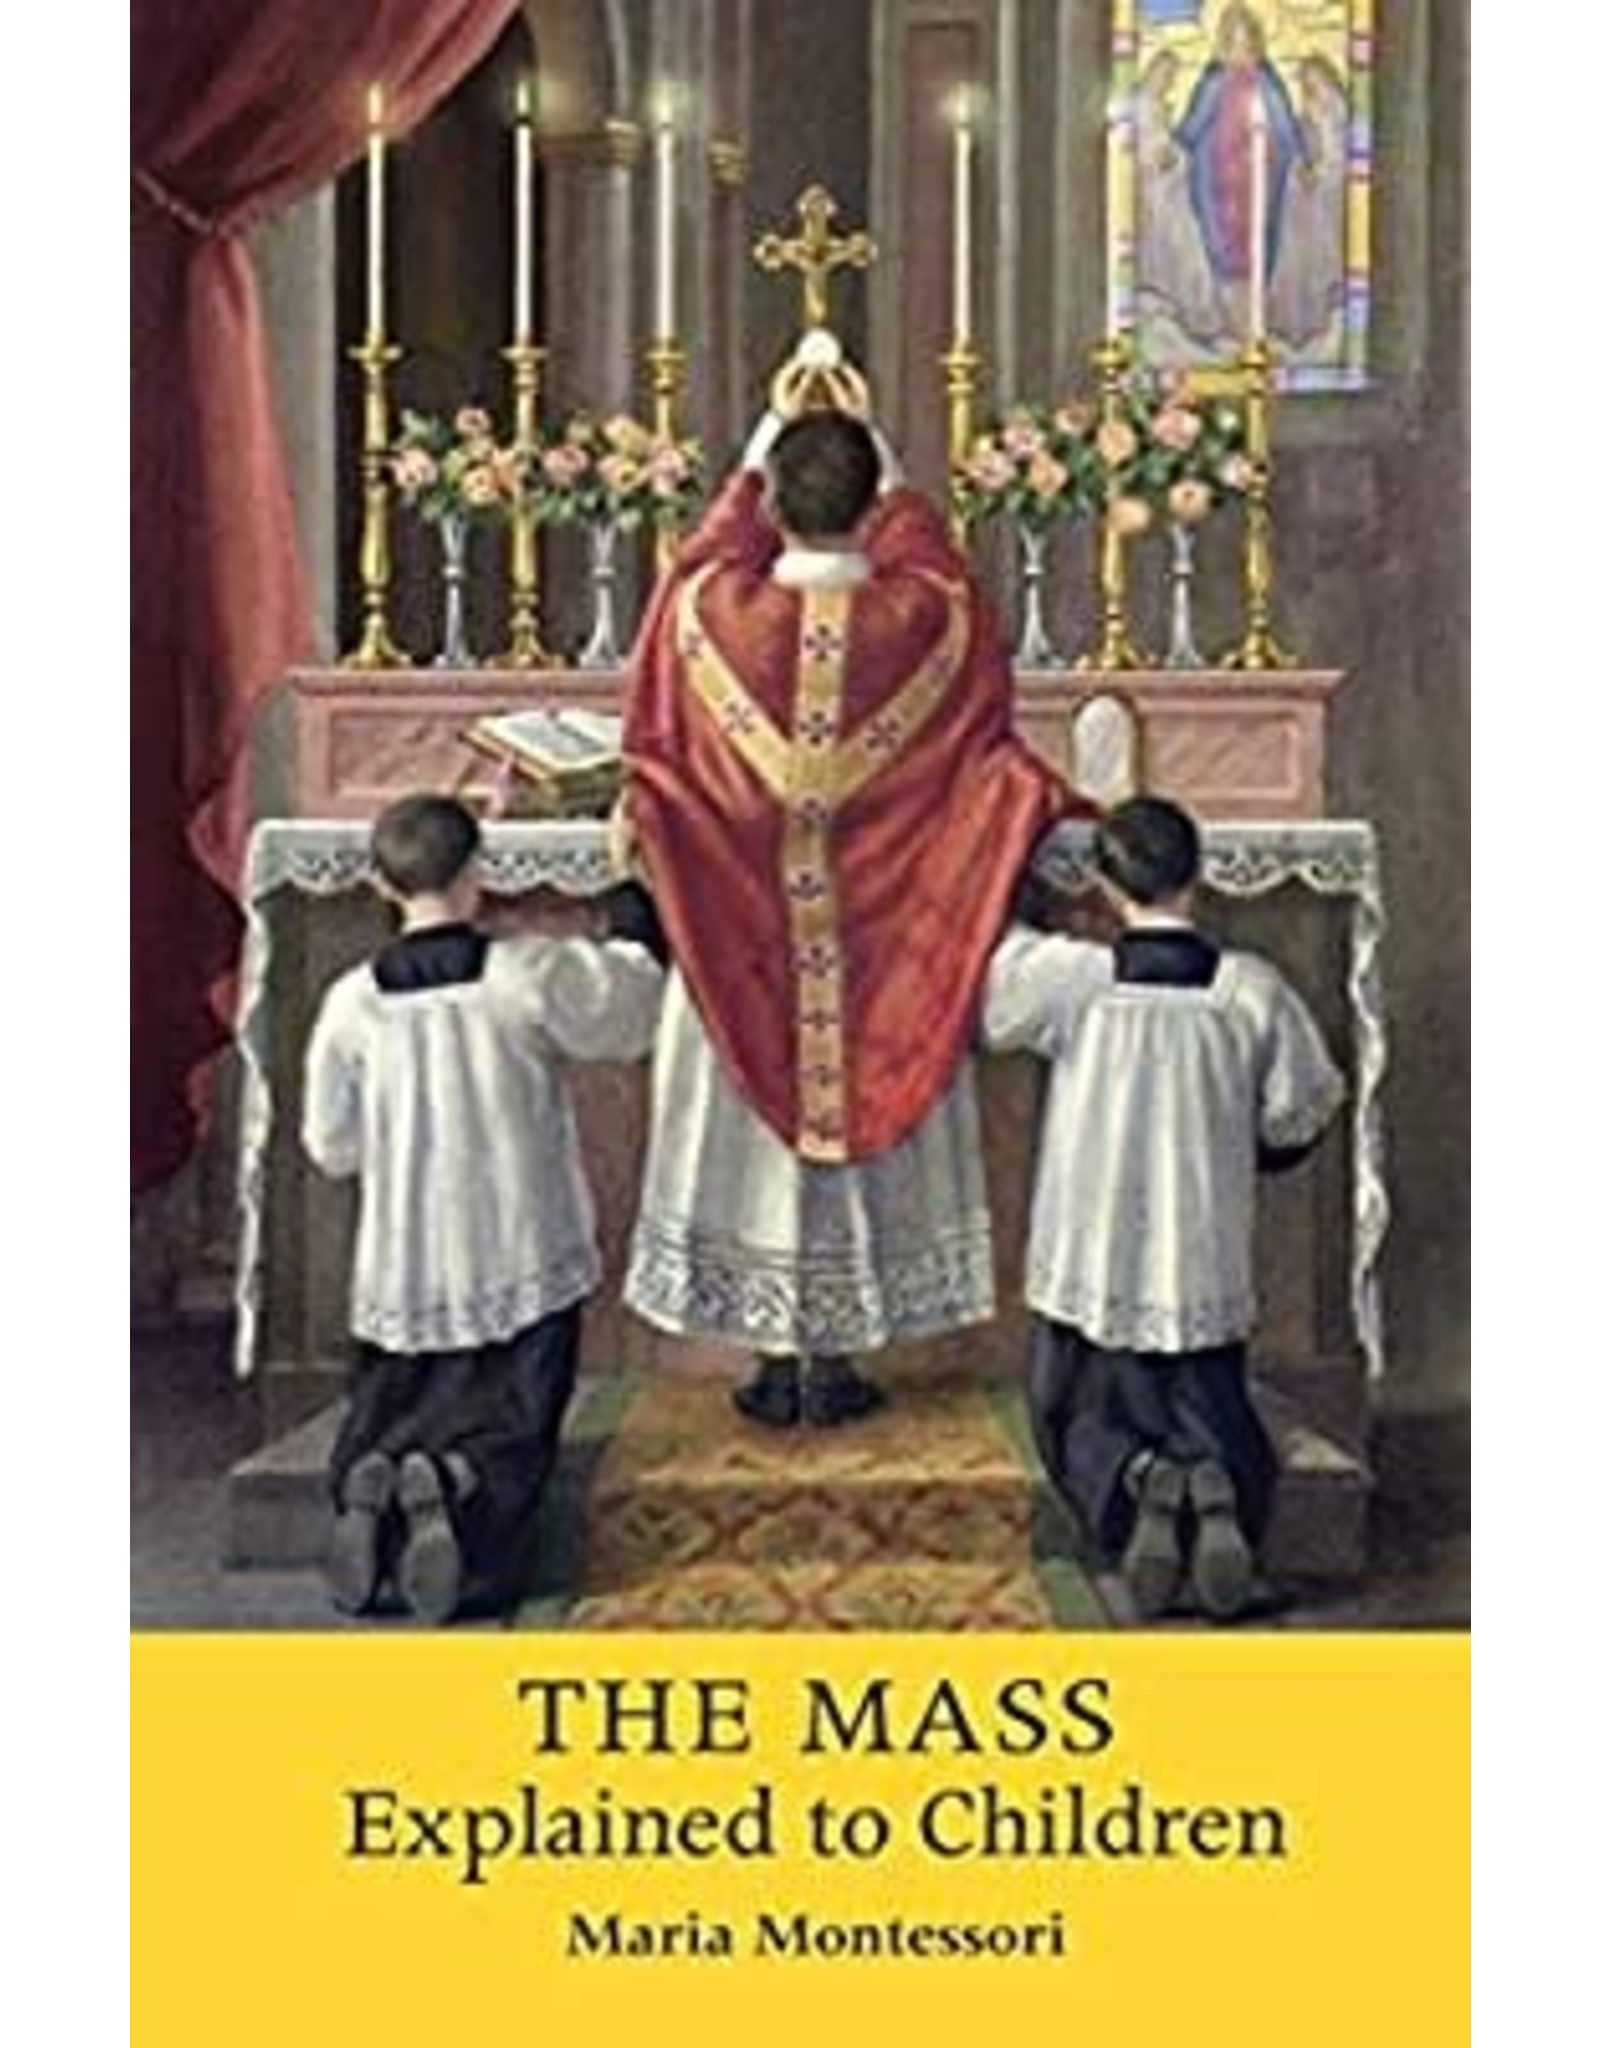 Montessori, Maria The Mass Explained to Children